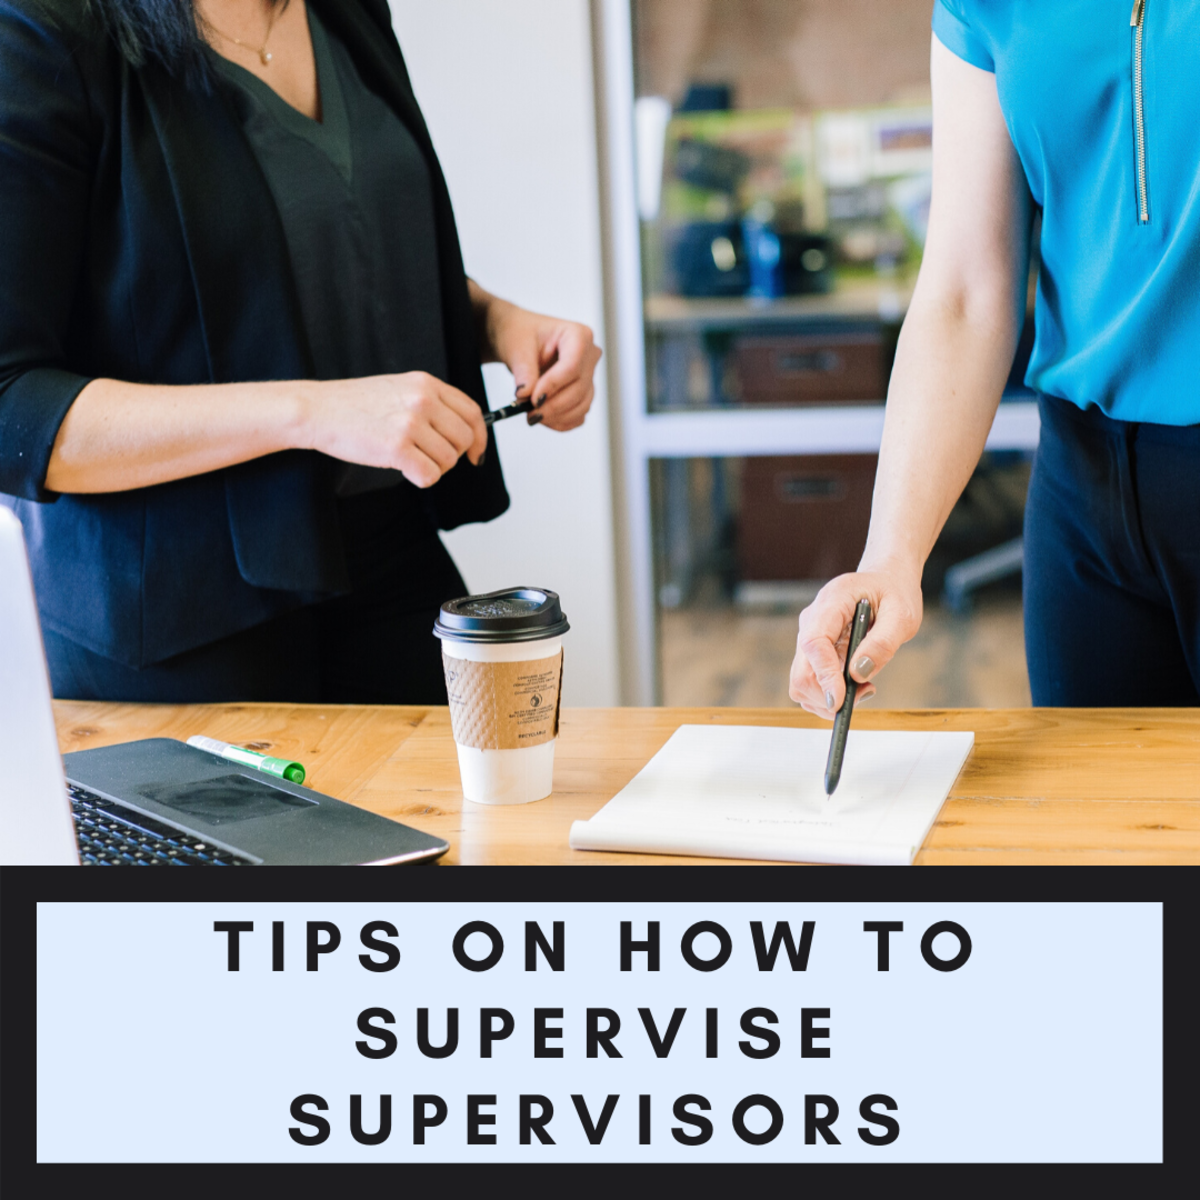 Even your supervisor needs supervising. Read on to learn how to do it well.